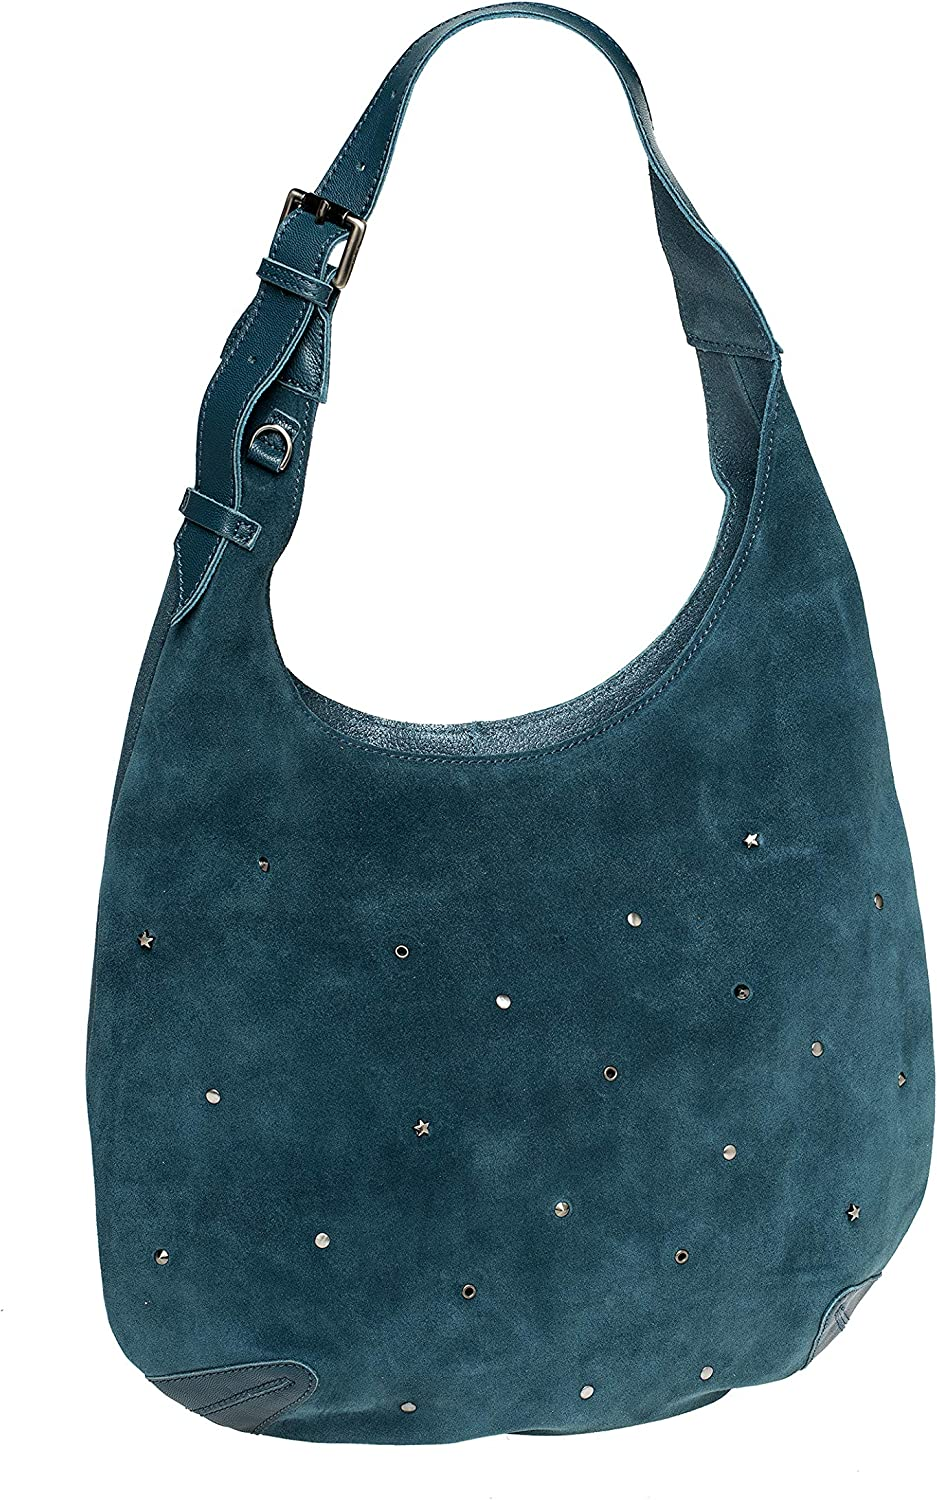 Mila Louise Hobo New All items in the store mail order Petrole Bags Bleu